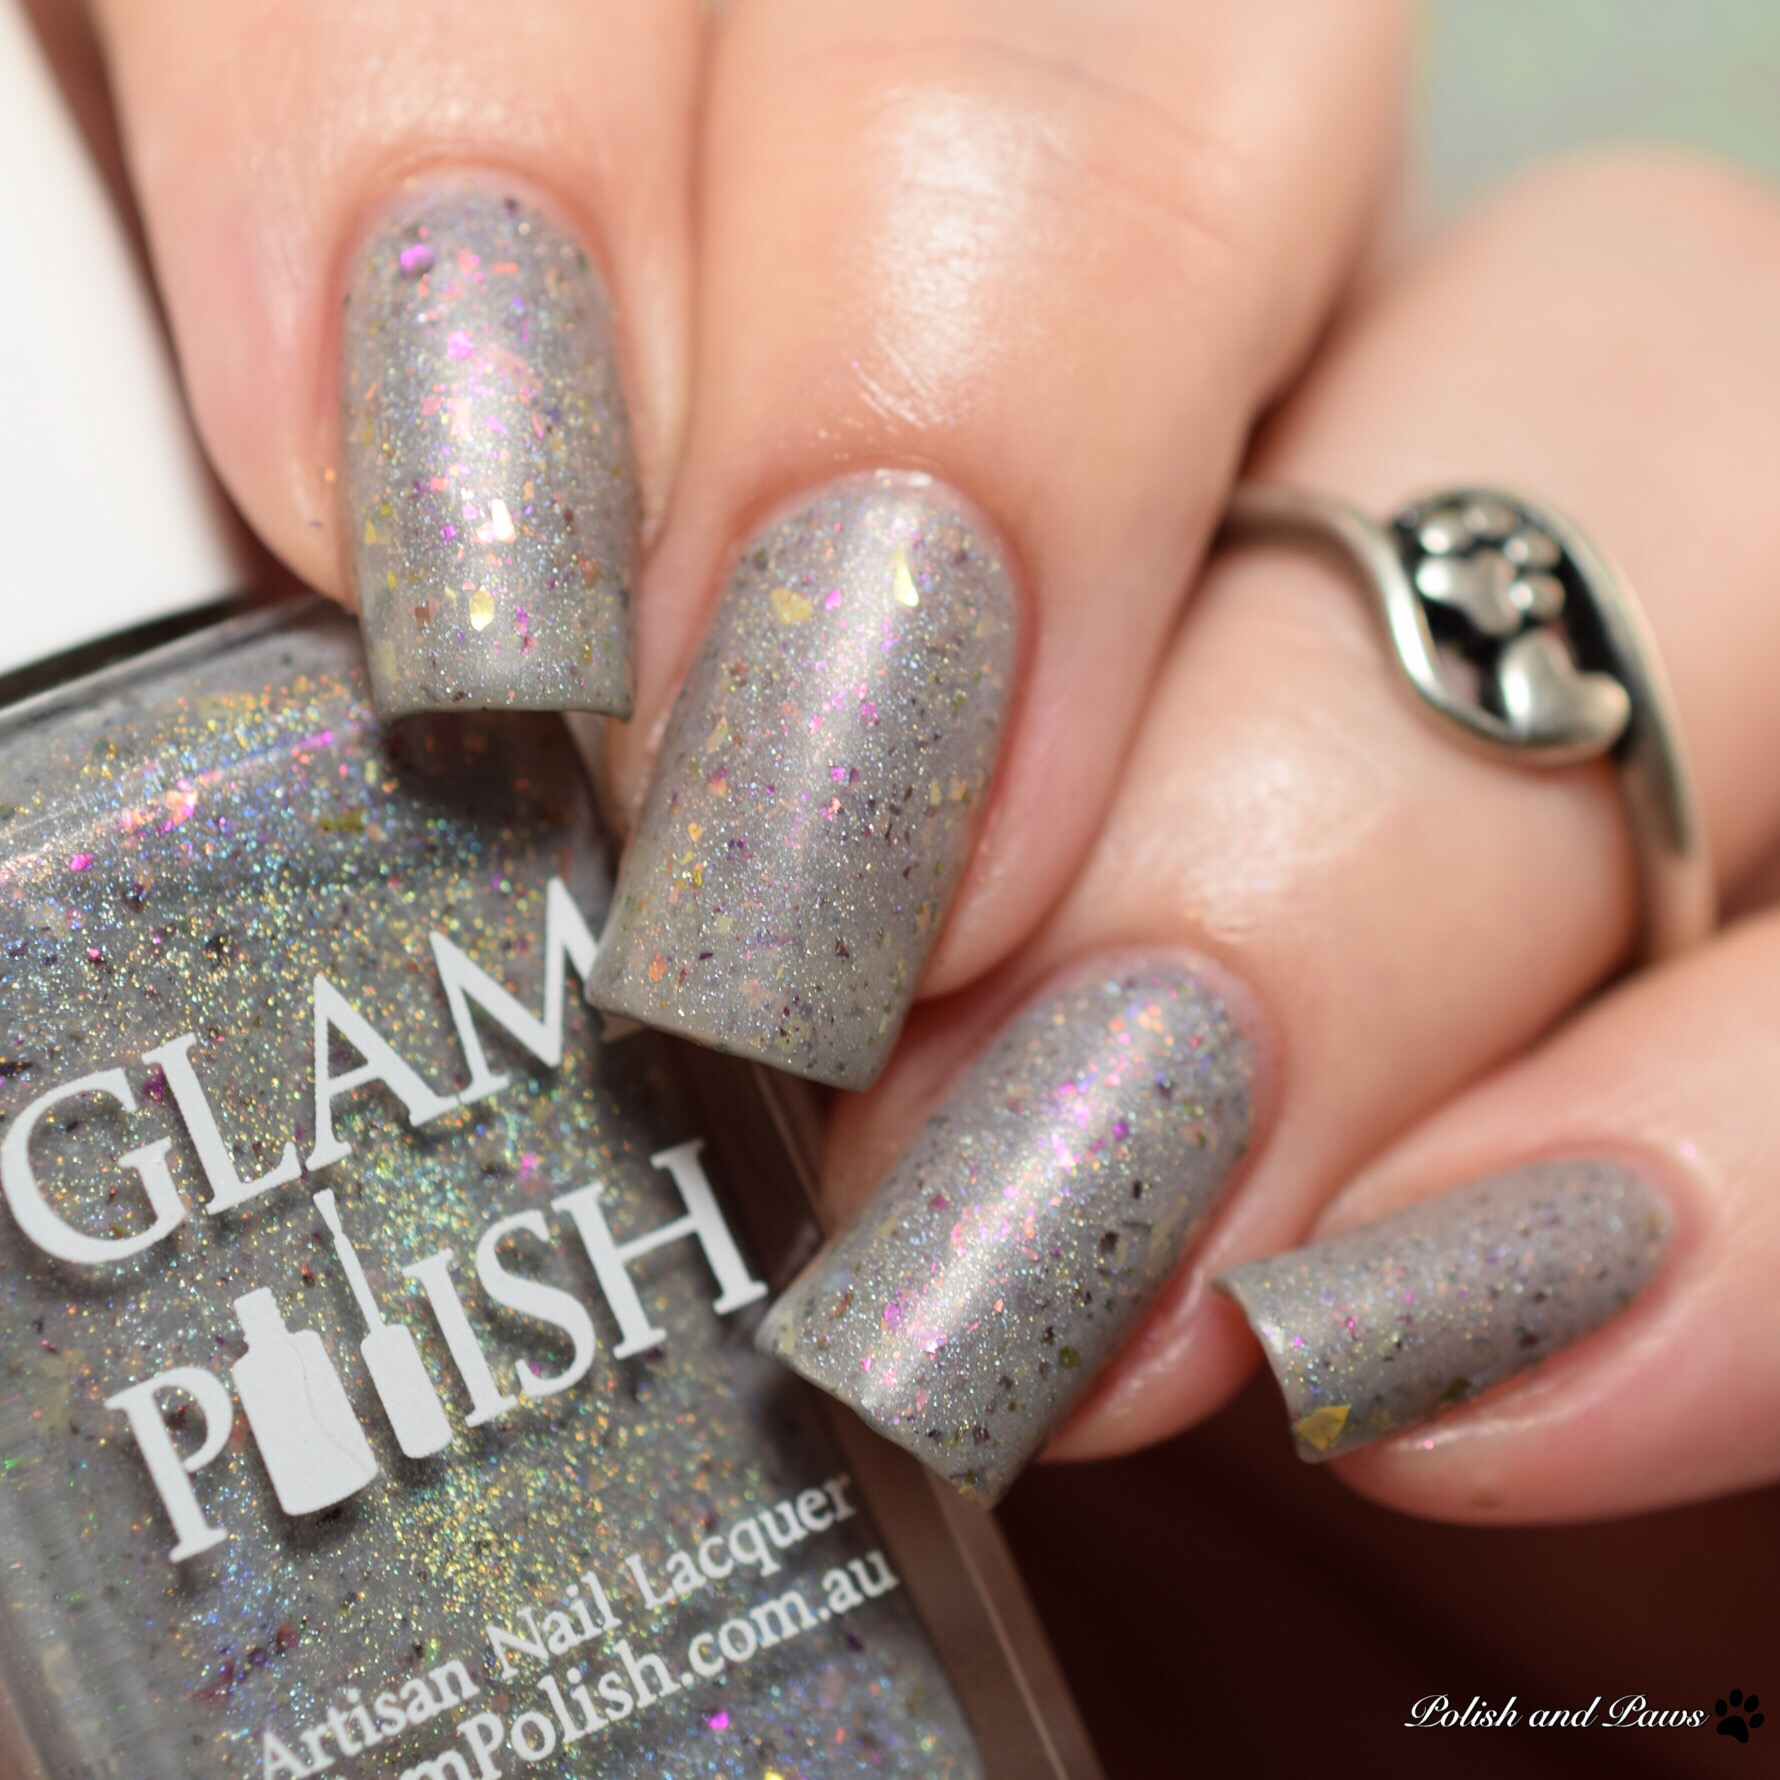 Glam Polish Why Couldn't it be